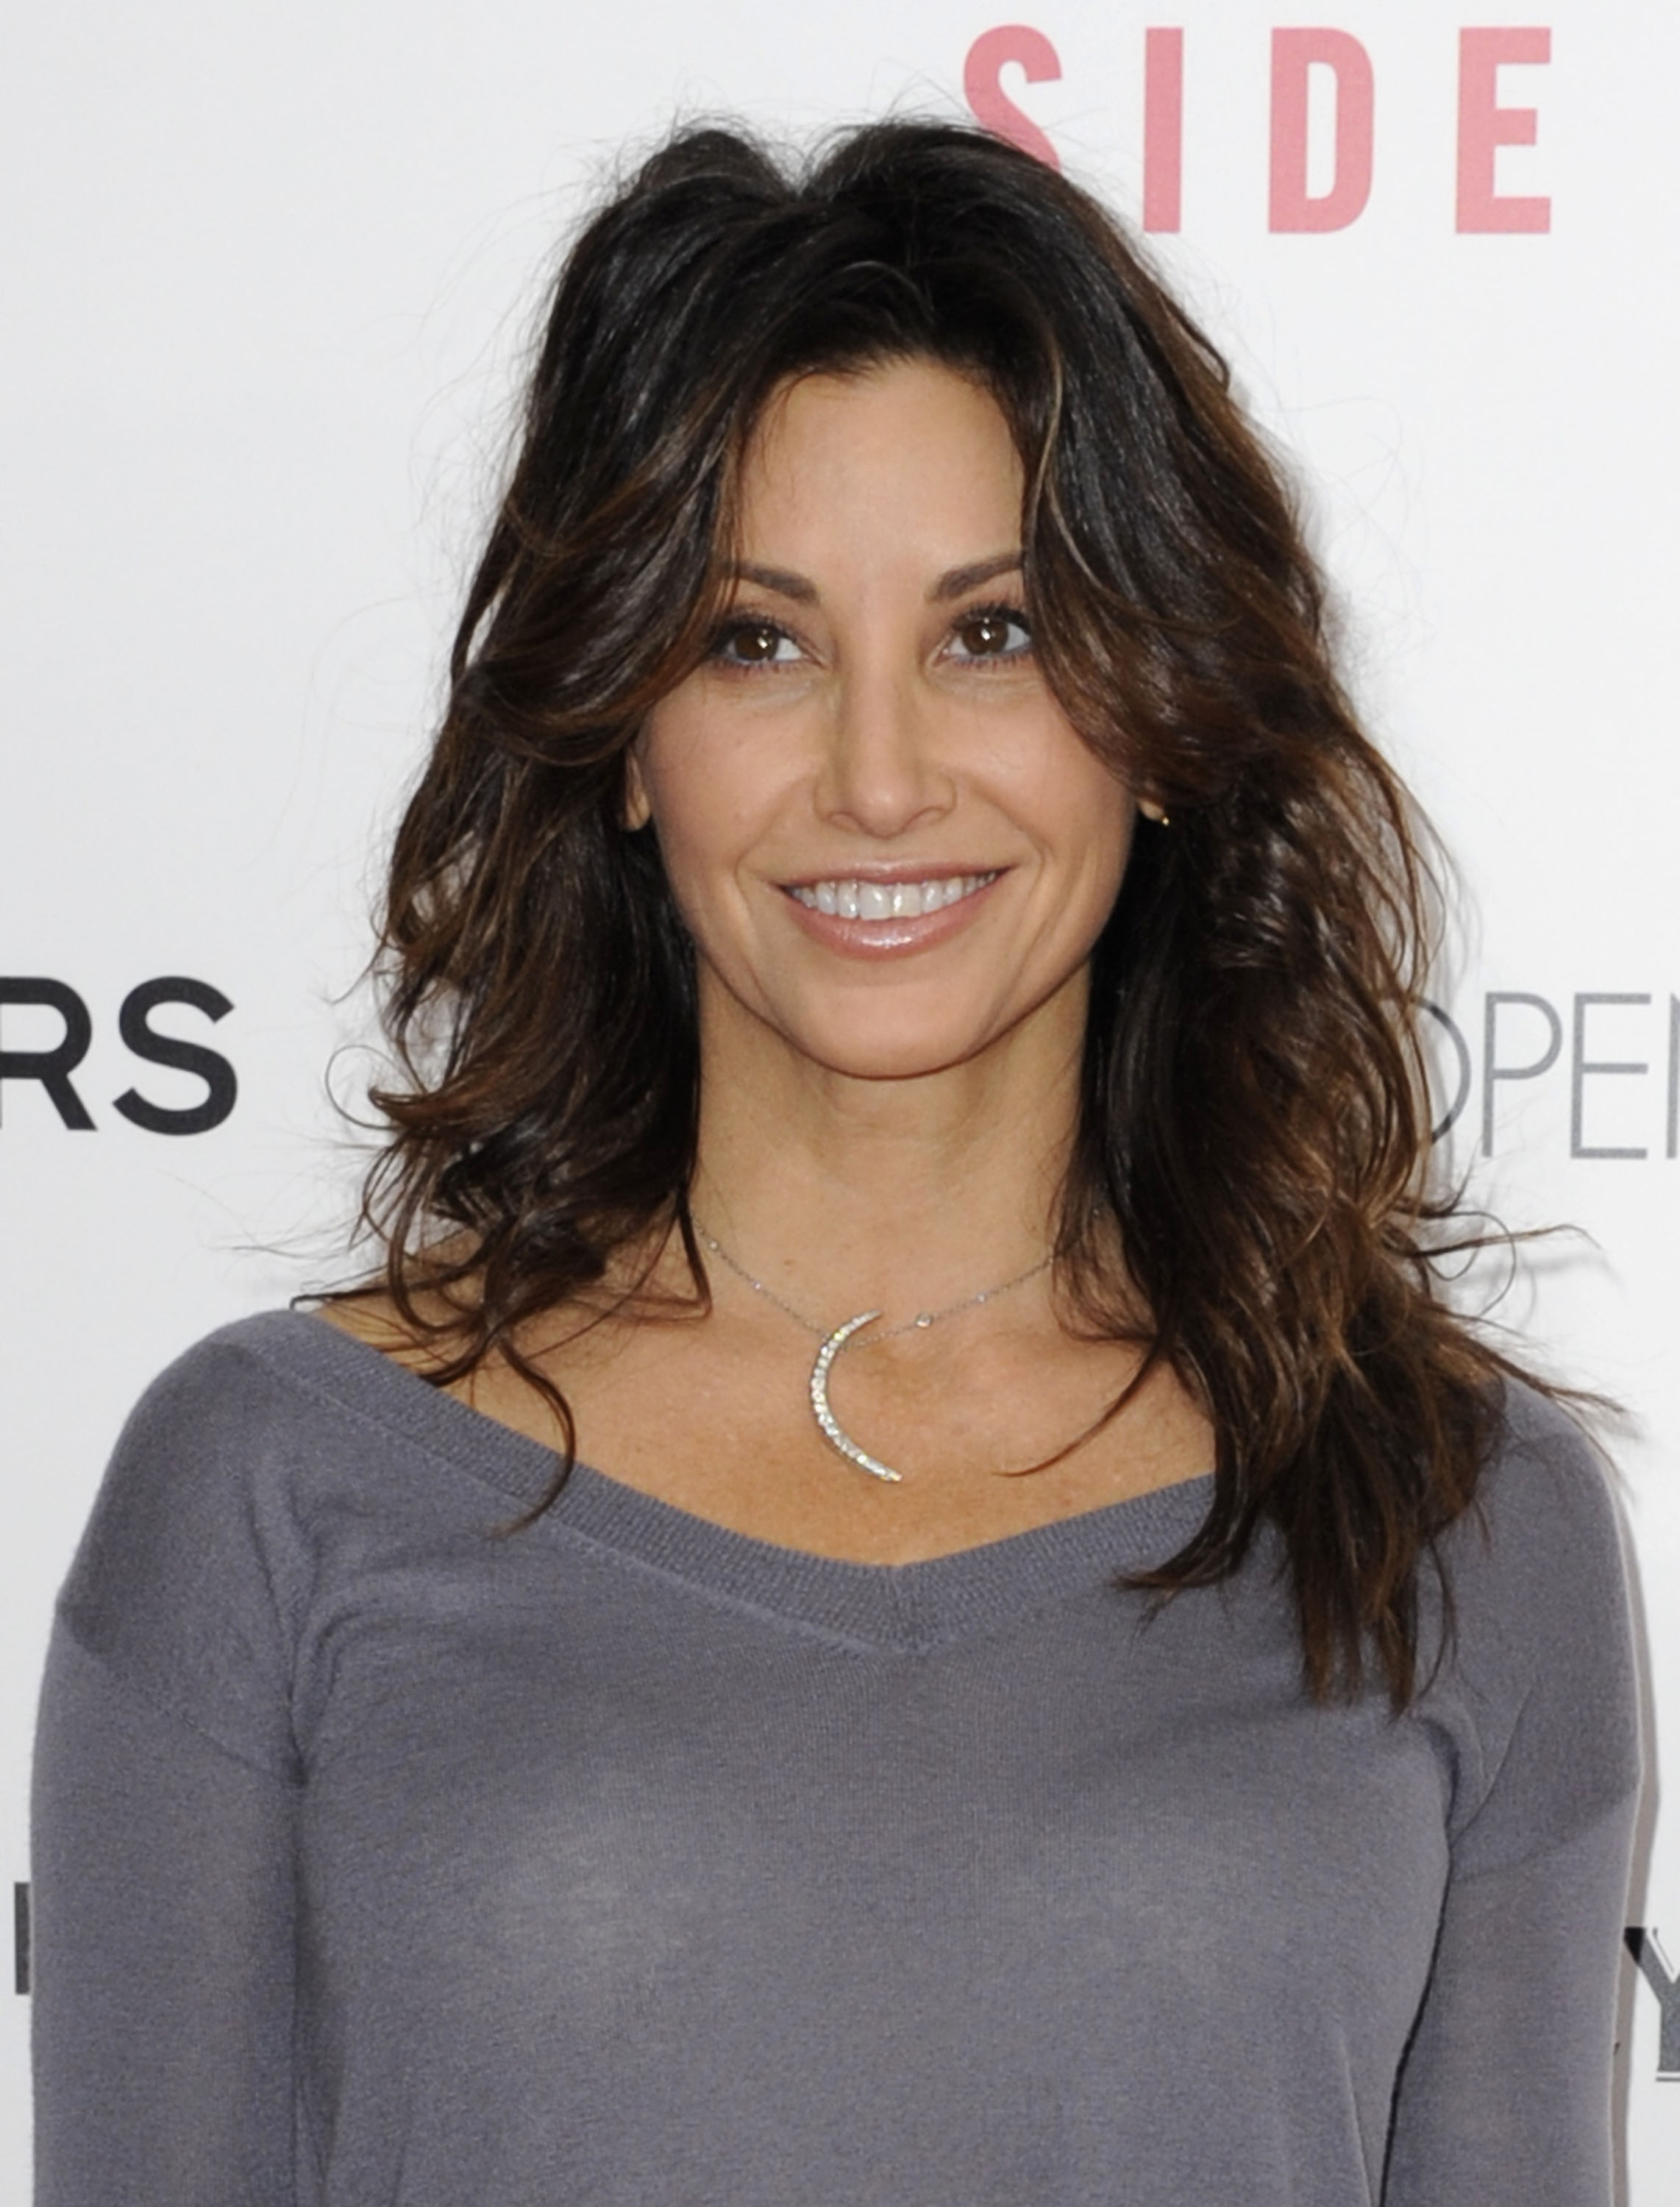 Gina Gershon (Photo by Dave Kotinsky/Getty Images)